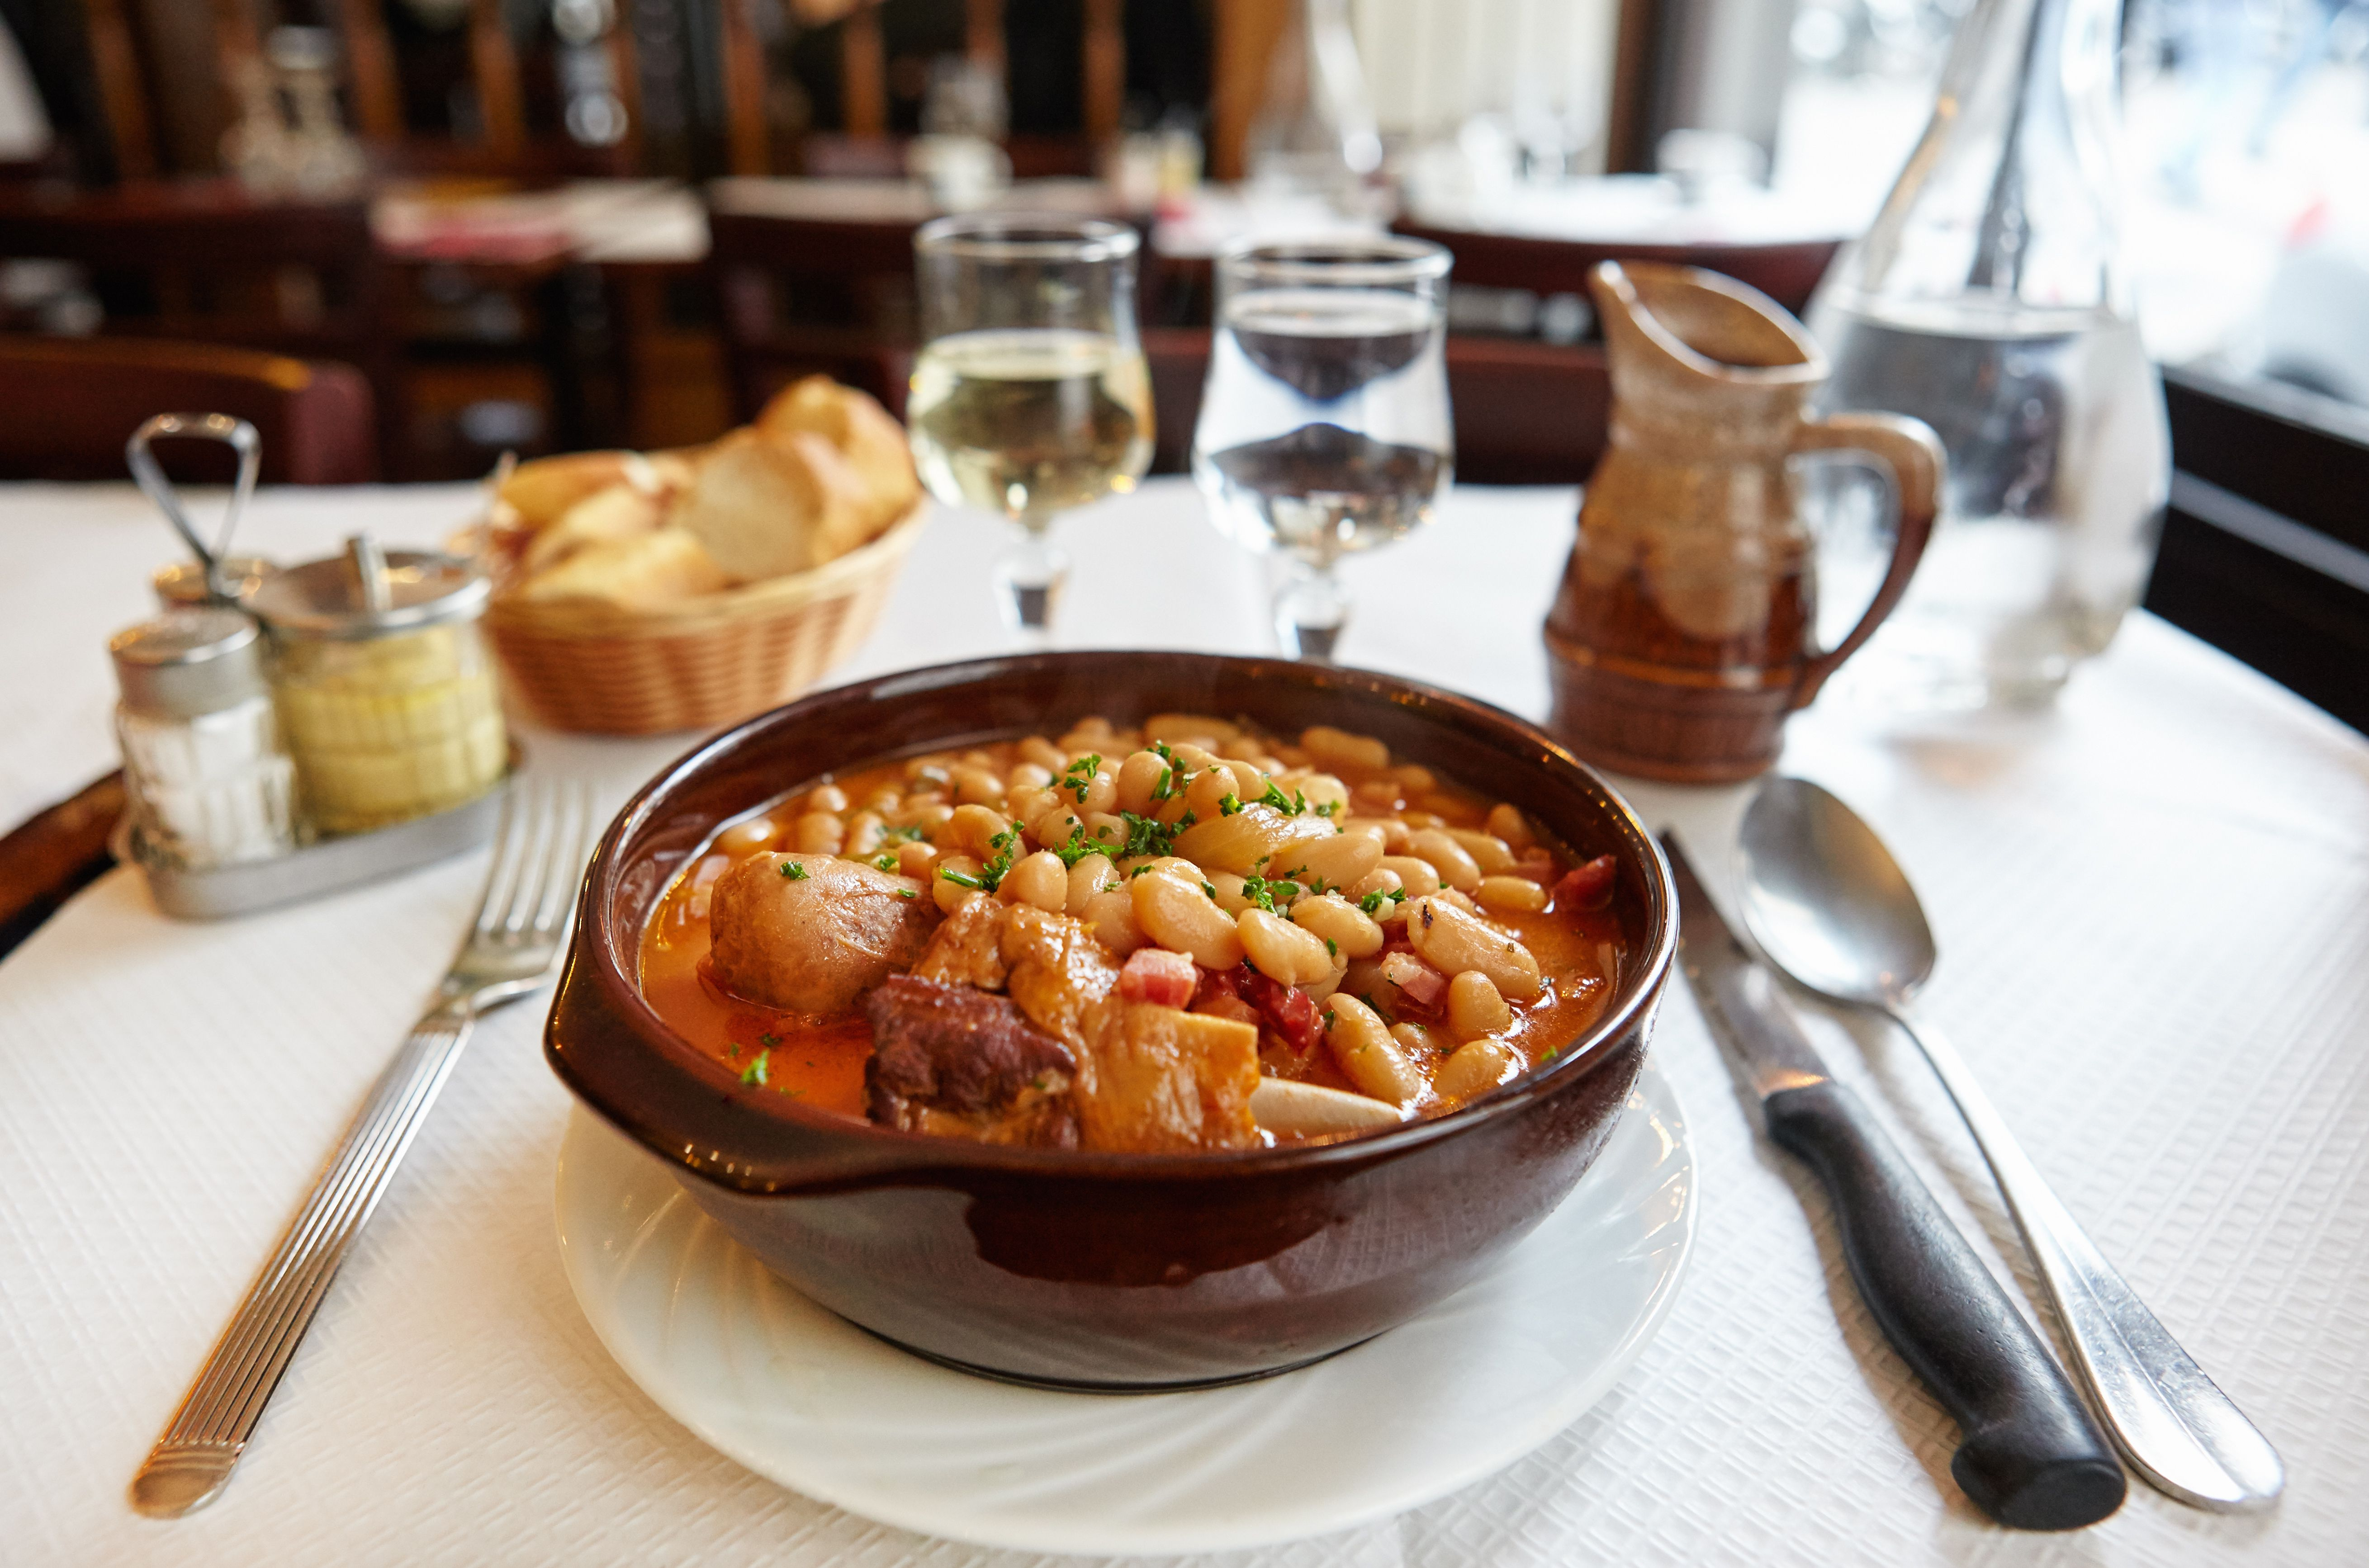 Chicken And Sausage French Cassoulet Recipe